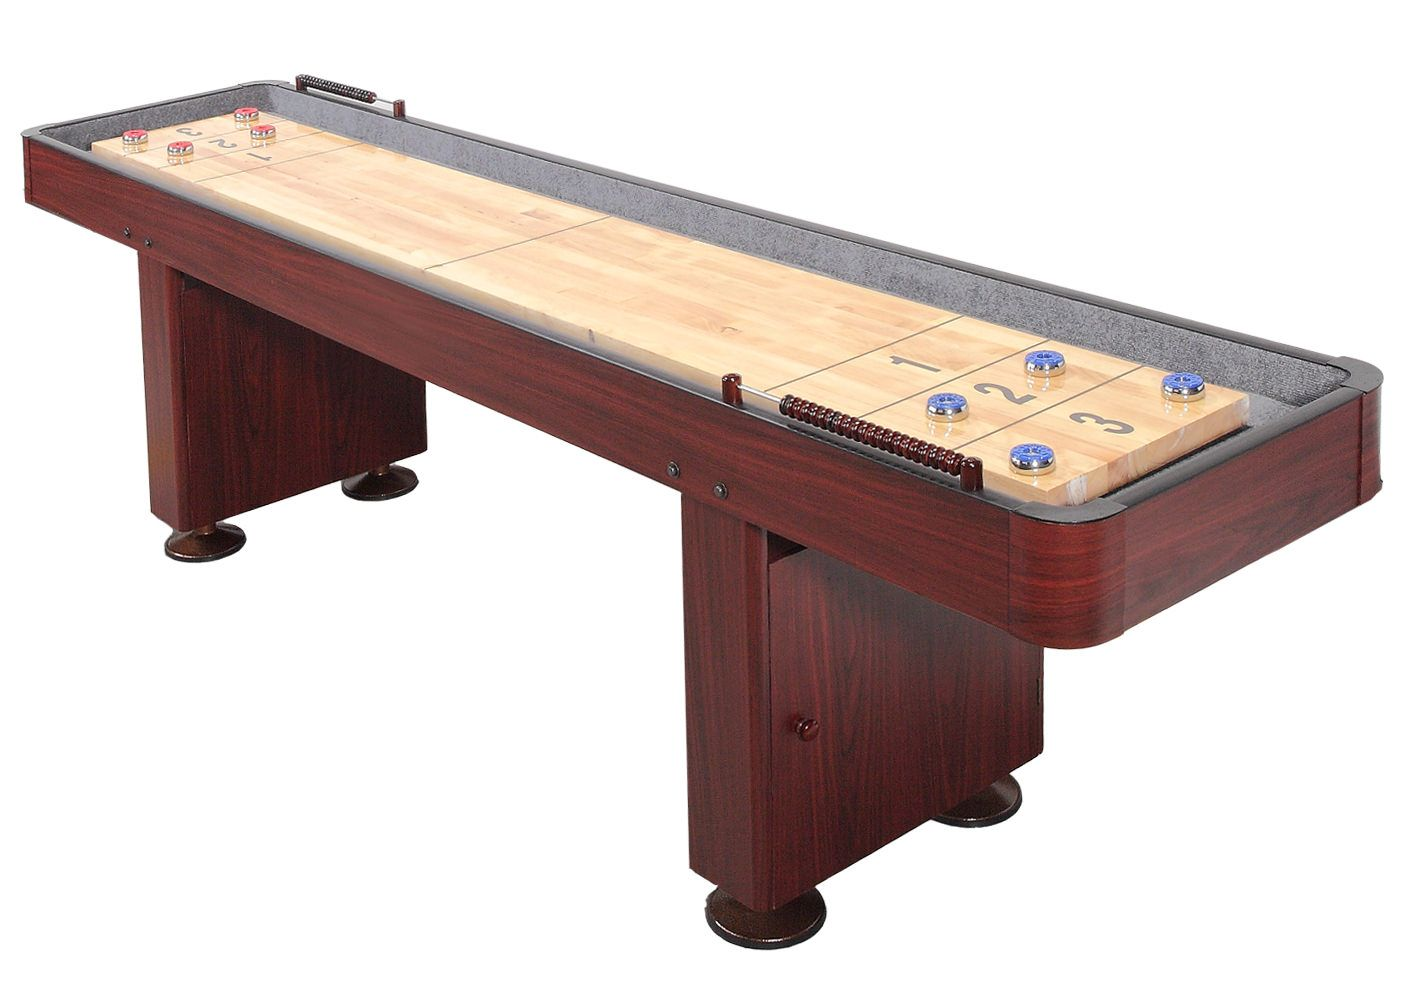 9 Foot Deluxe Shuffleboard Table - Dark Cherry